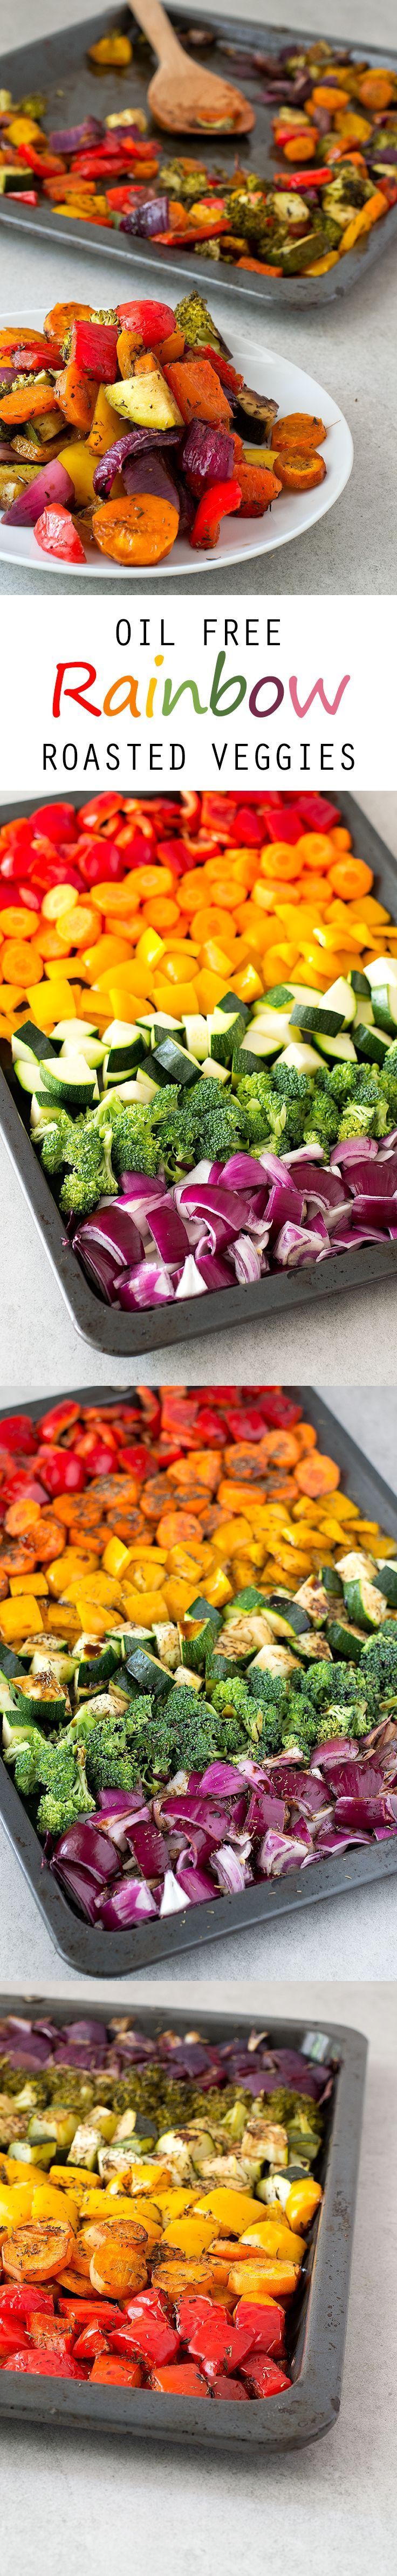 (Vegan and GF) Oil Free Rainbow Roasted Vegetables #vegan #glutenfree